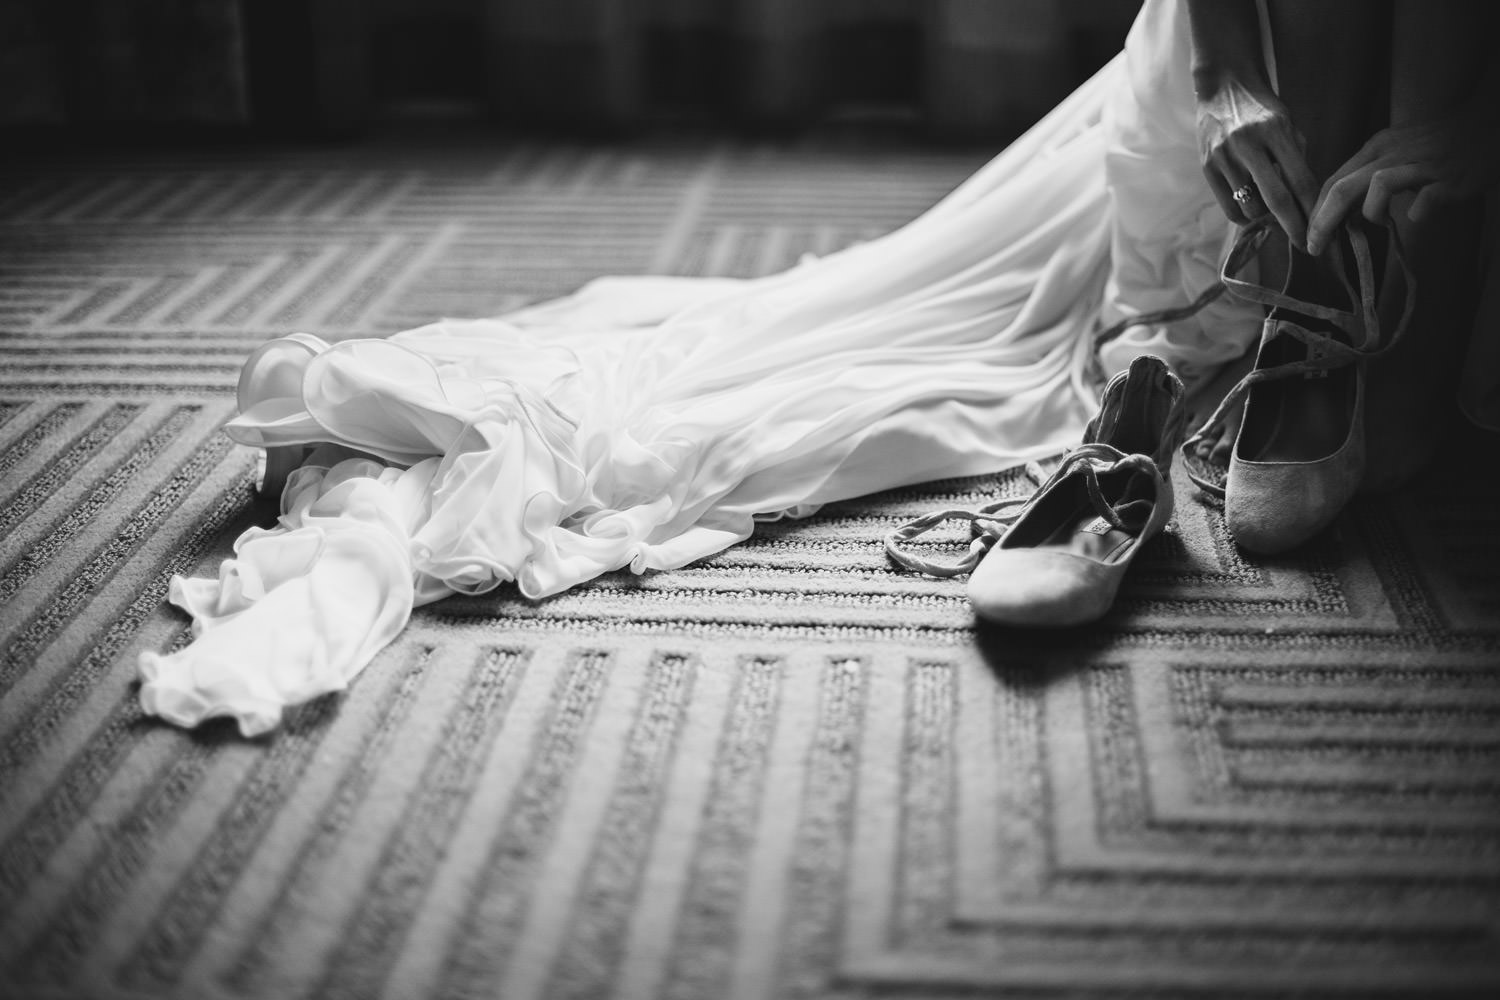 Find art picture of the bride putting on her shoes